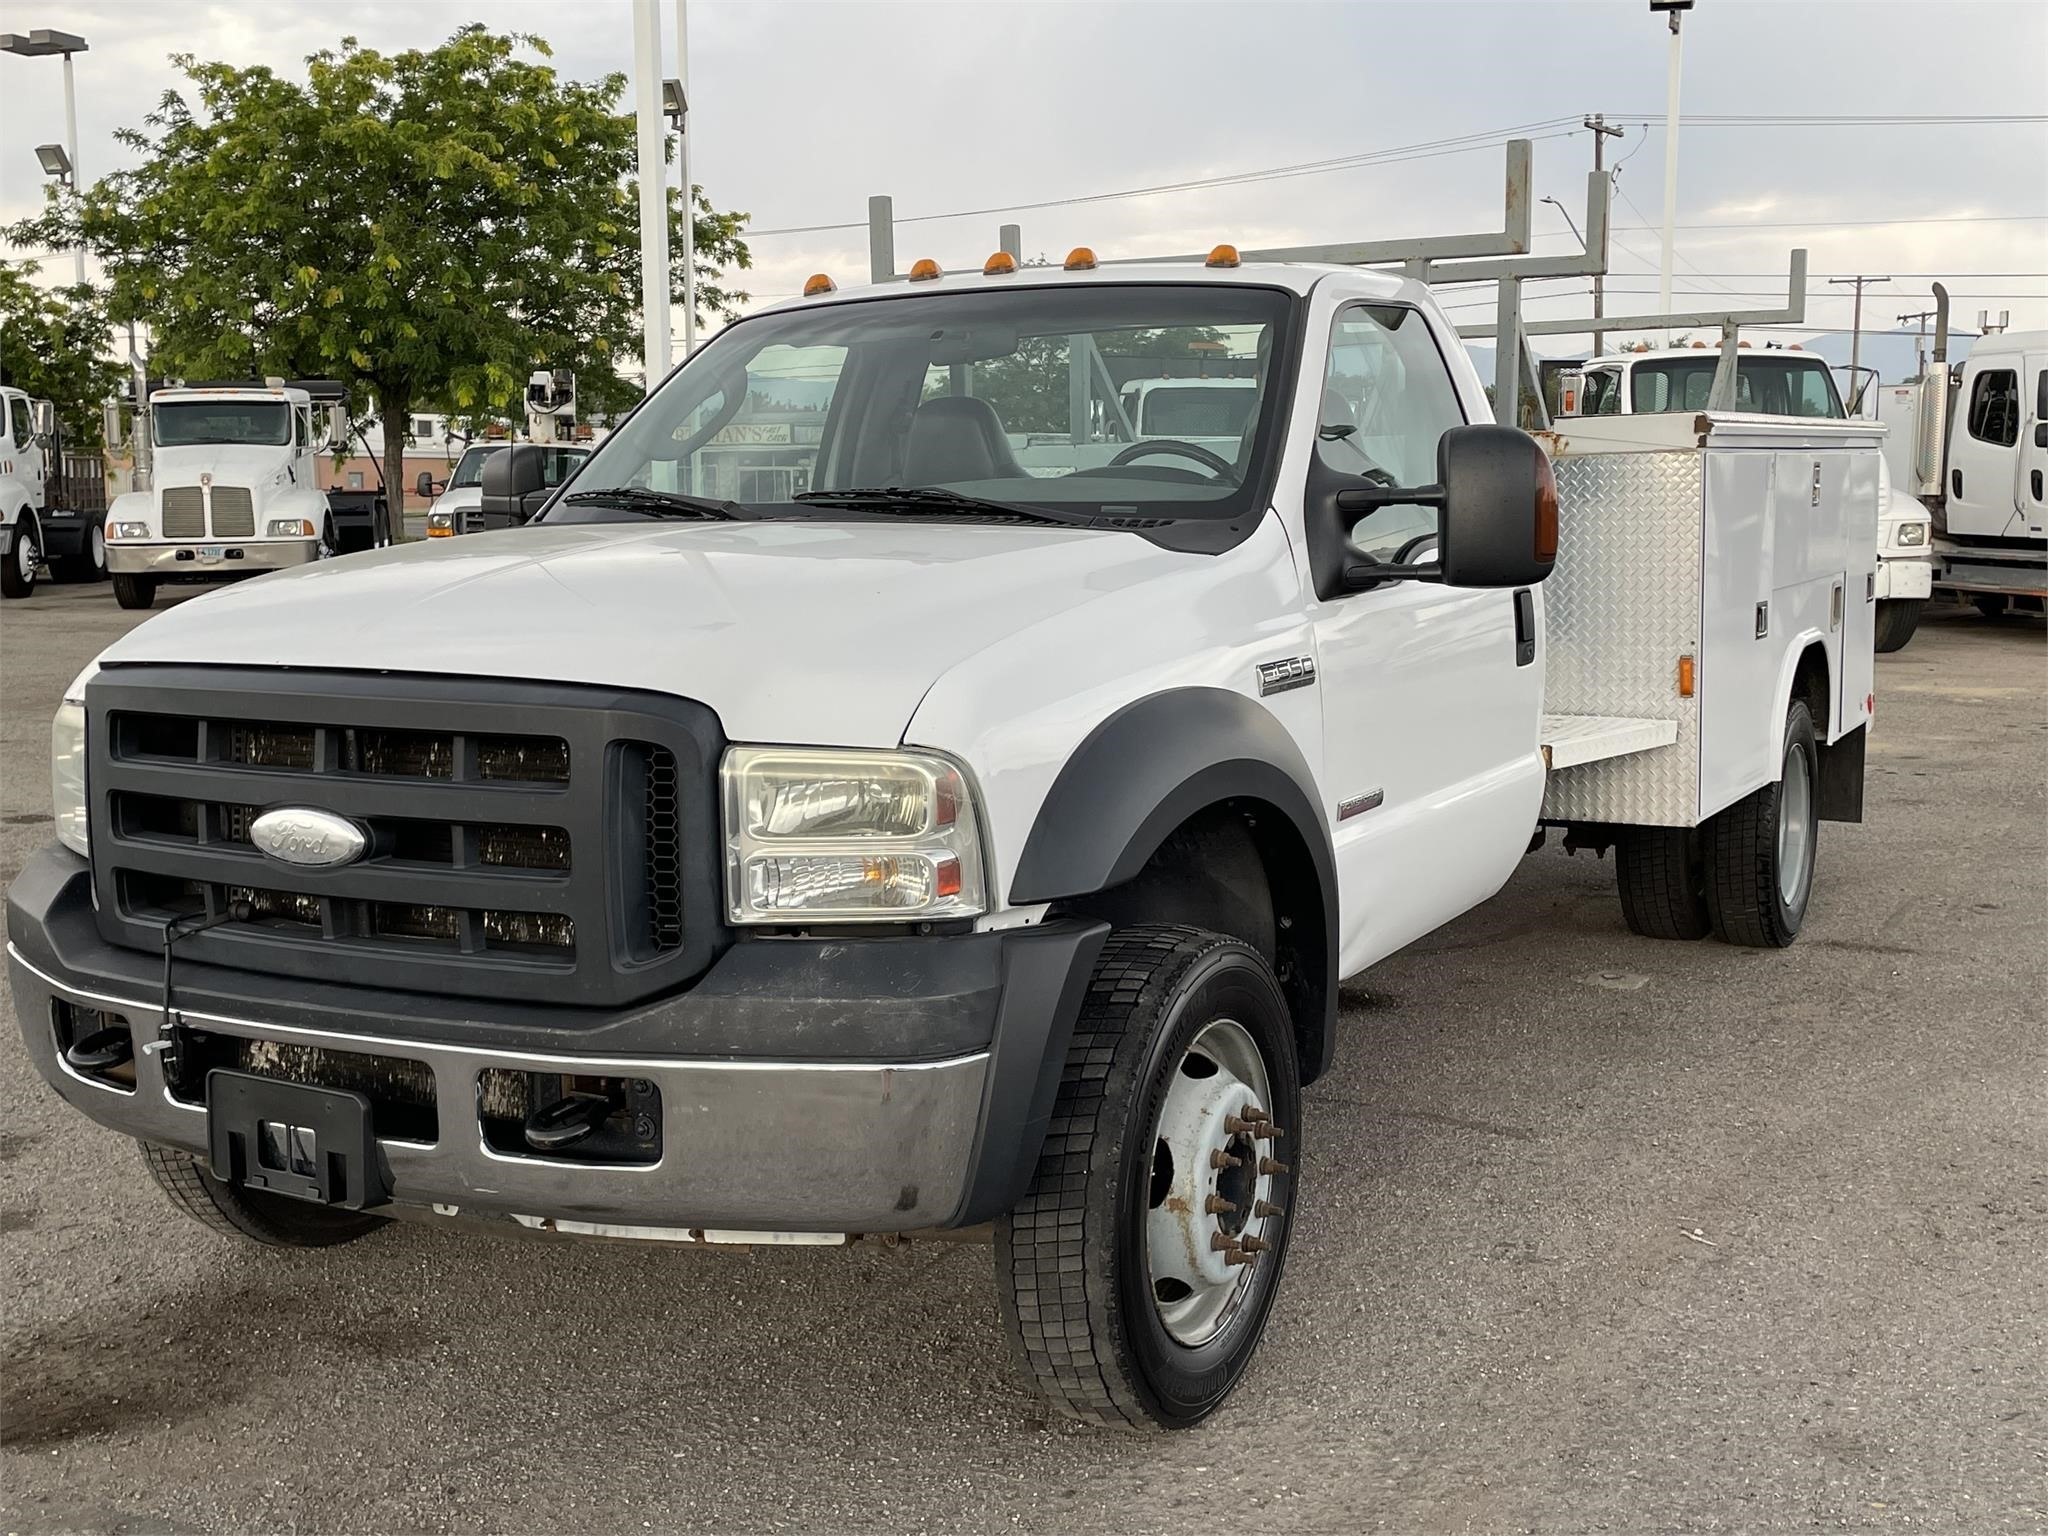 Used, 2007, FORD, F550, Utility Truck - Service Truck